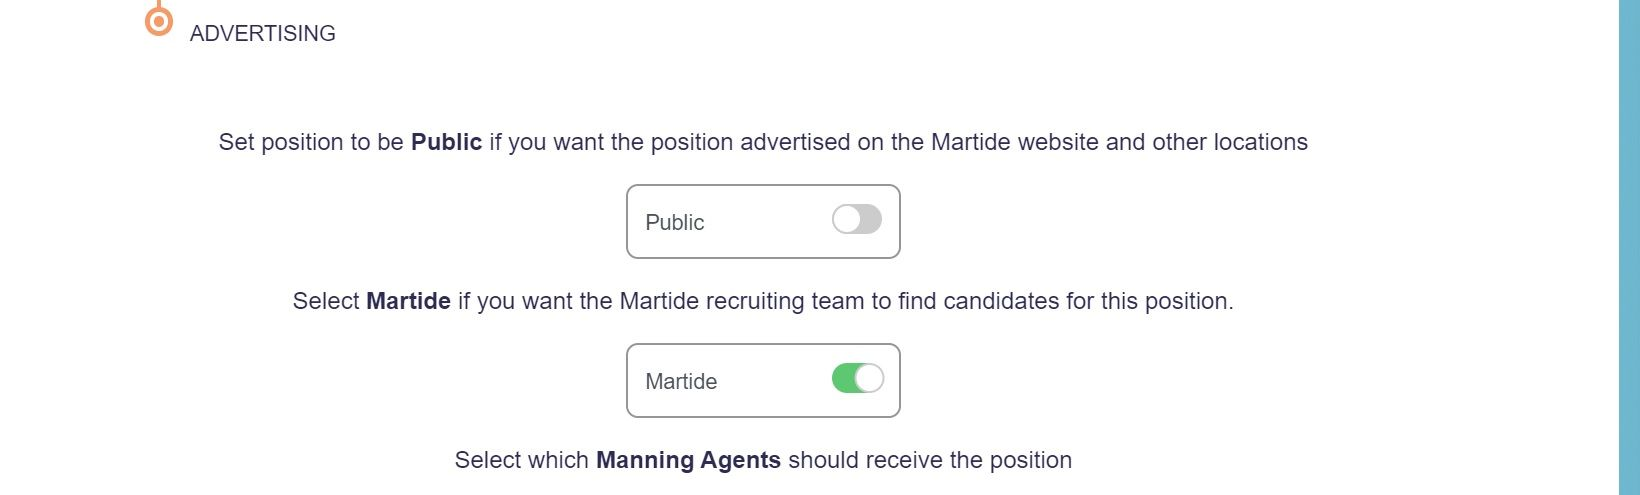 screenshot of Martide website showing the advertising section